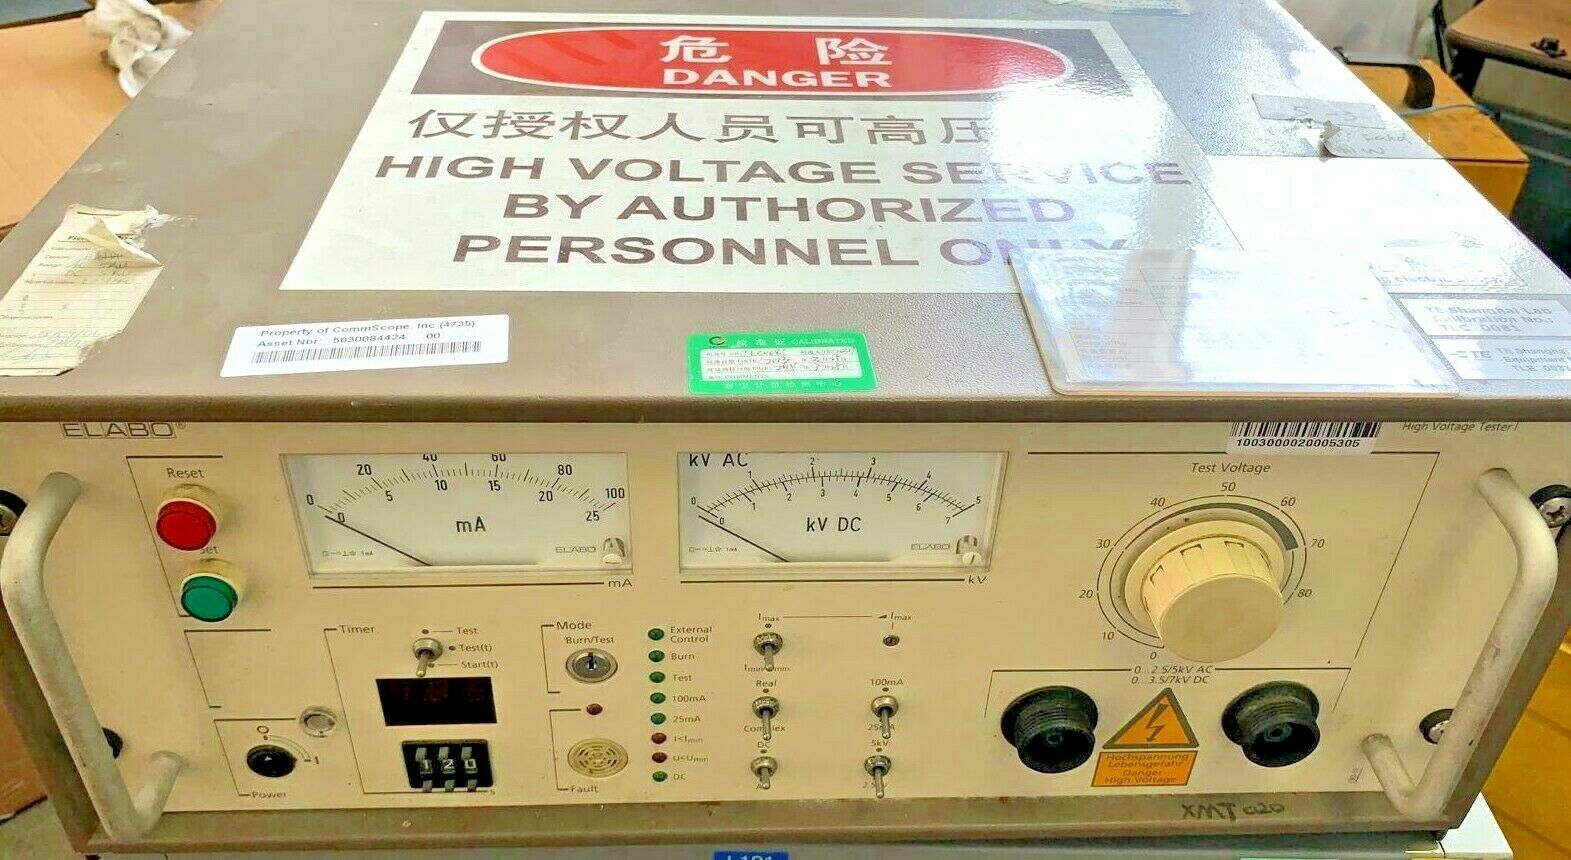 Elabo High Voltage Tester XMT020 - Used - Industrial Test Equipment 0~5kV AC, 0~7kV DC